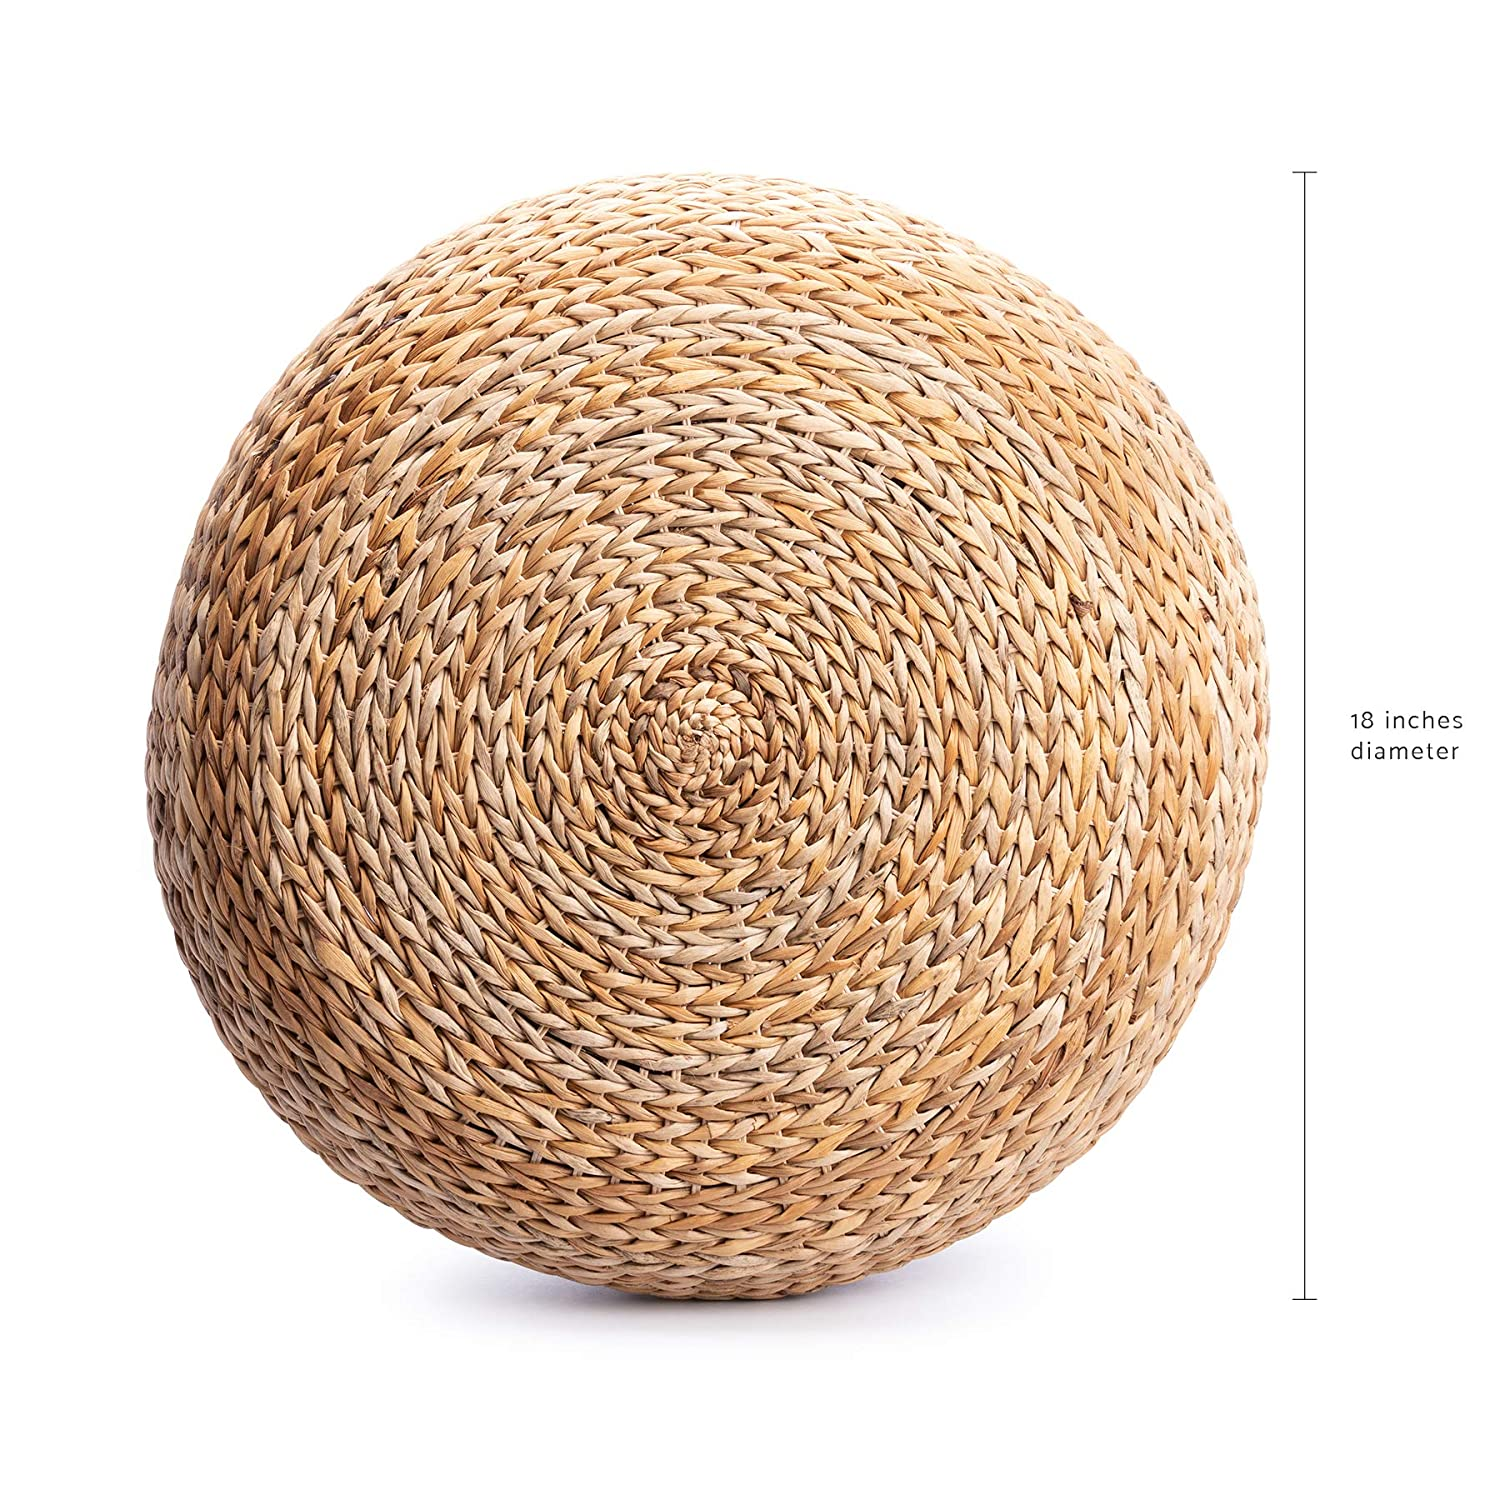 Round Pillow 18 inches Housewarming Summer Japanese Style Present for Her Outdoor Room Decor Natural Rattan Stool Ottoman Handwoven Banana Leaves Decorative Foot Rest Gift for Women